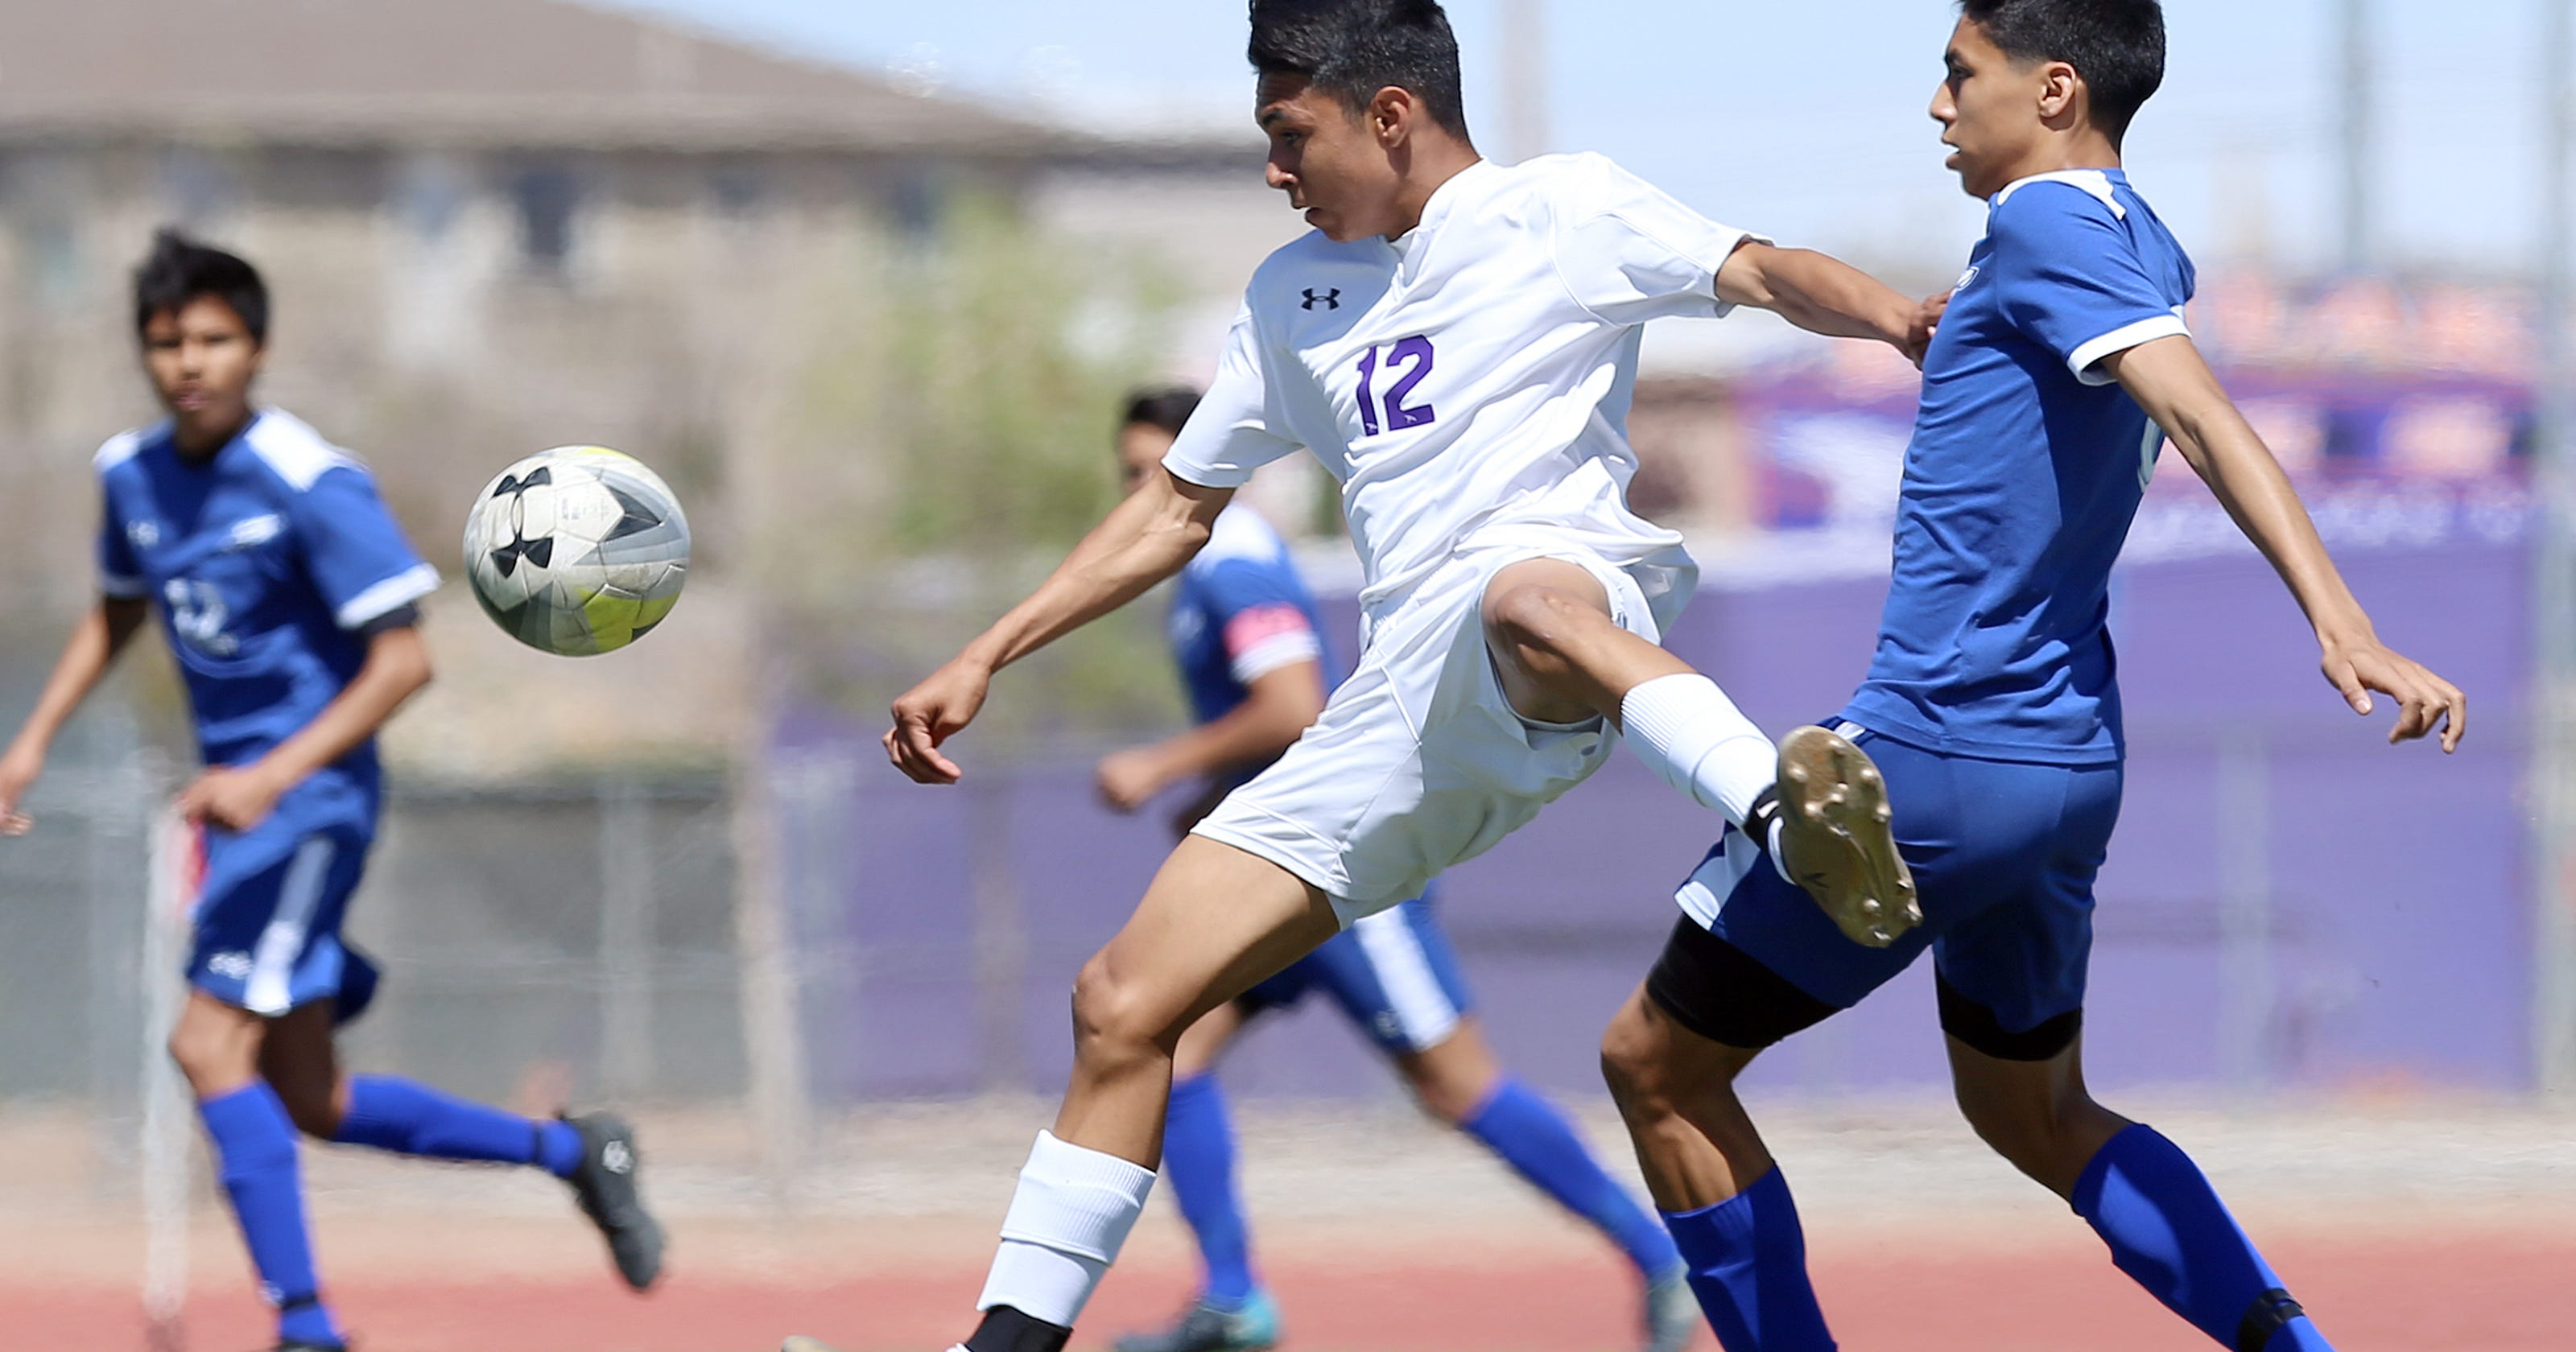 Eastlake High School Boys Advance In Texas UIL Soccer Playoffs